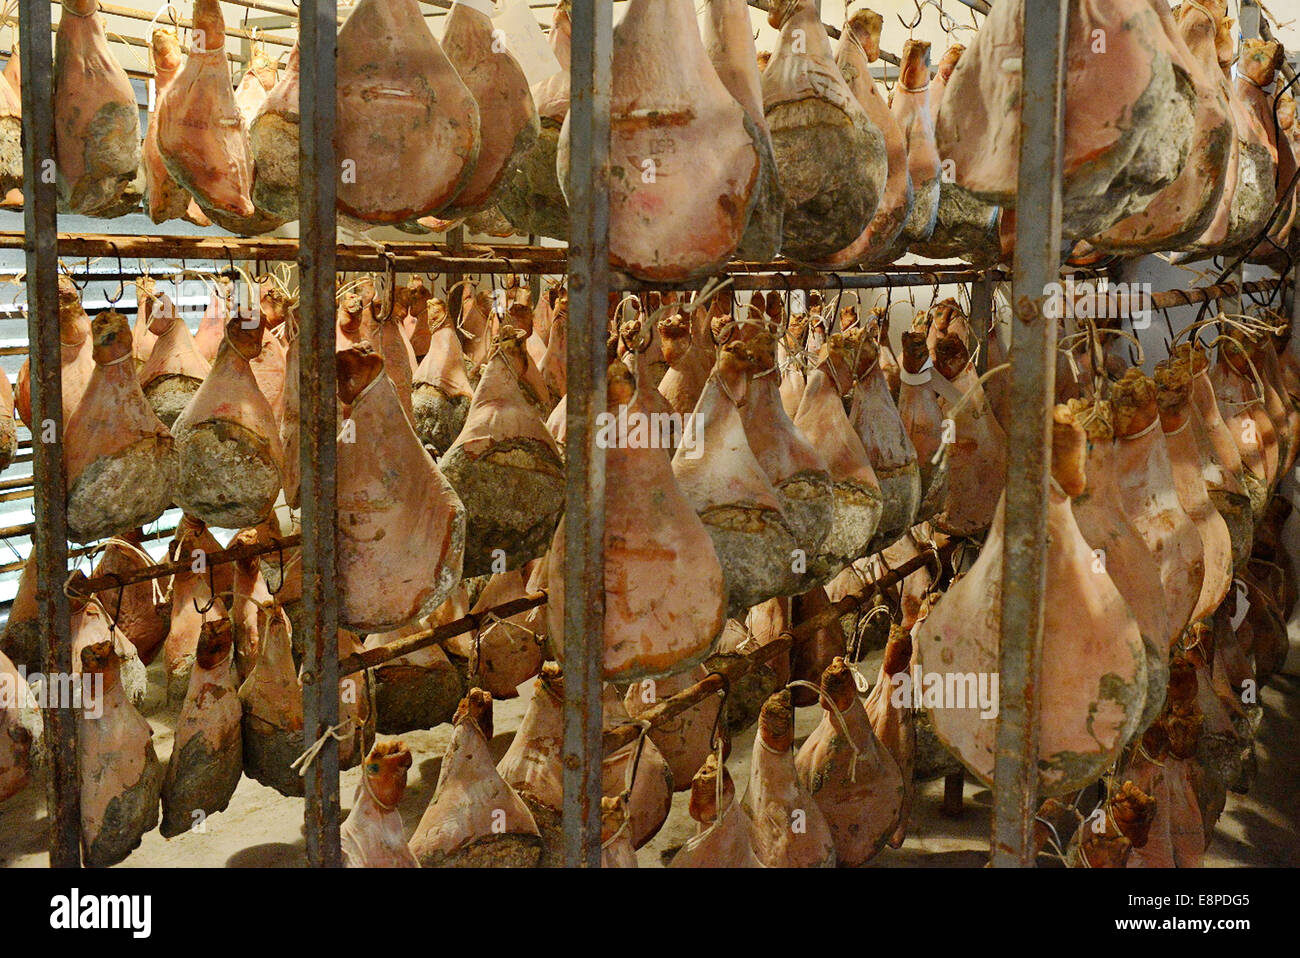 France, Pays Basque, Atlantic Pyrenees, Hasparren, drying Bayonne ham at the master butcher Louis Ospital - Stock Image